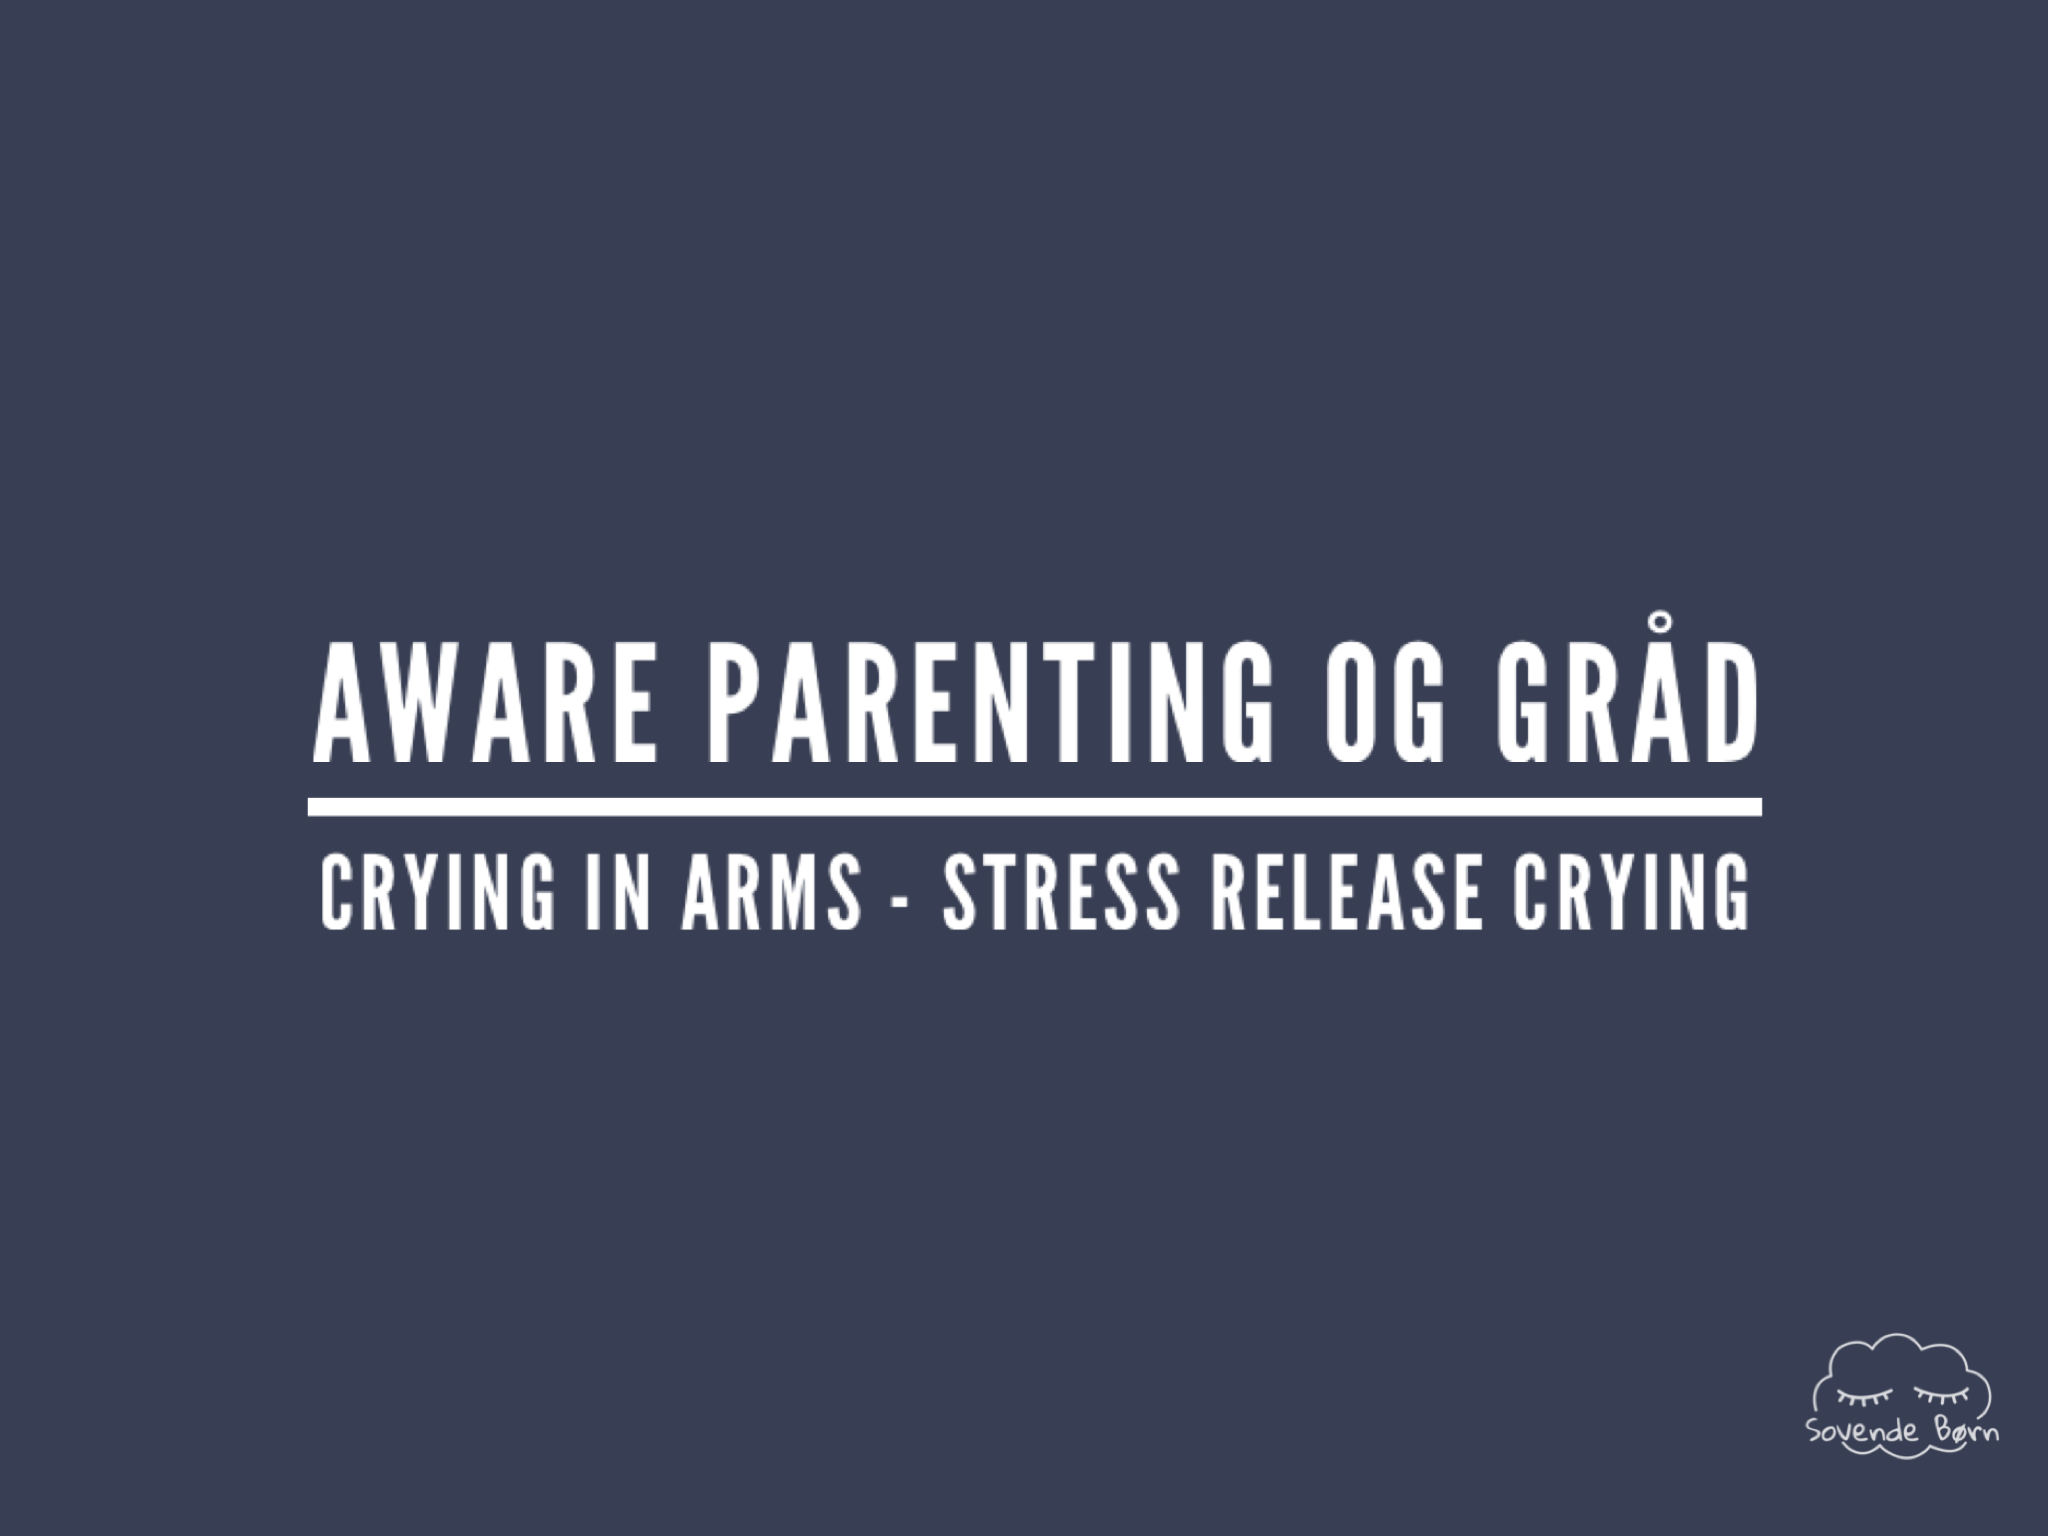 Sovende Børns position i forhold til Aware Parenting's crying in arms/stress release crying